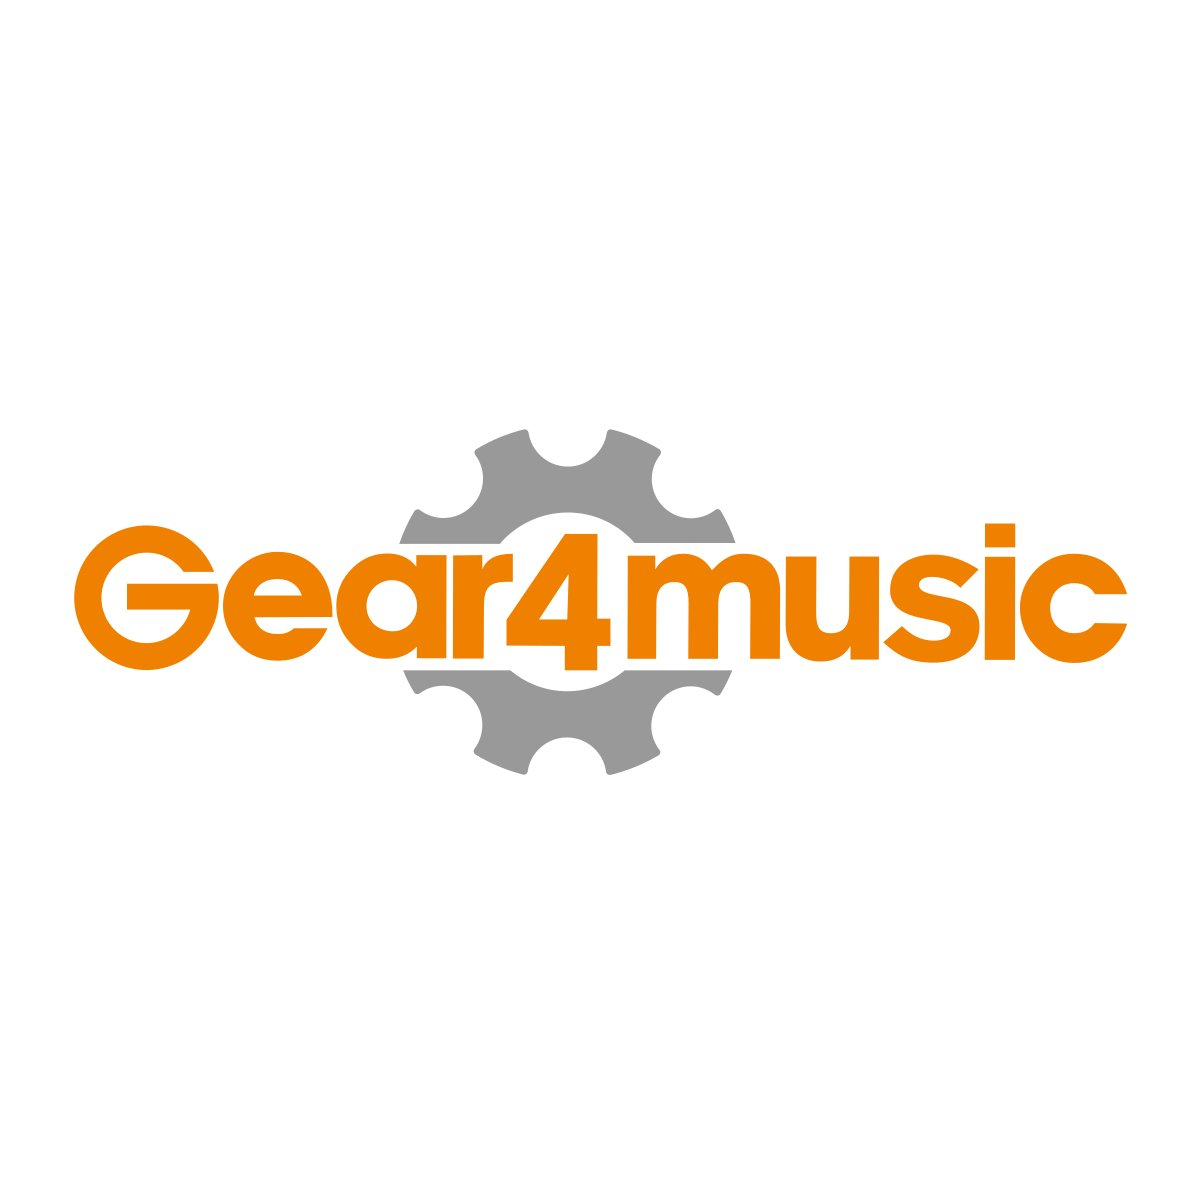 Image of Student Single French Horn by Gear4music